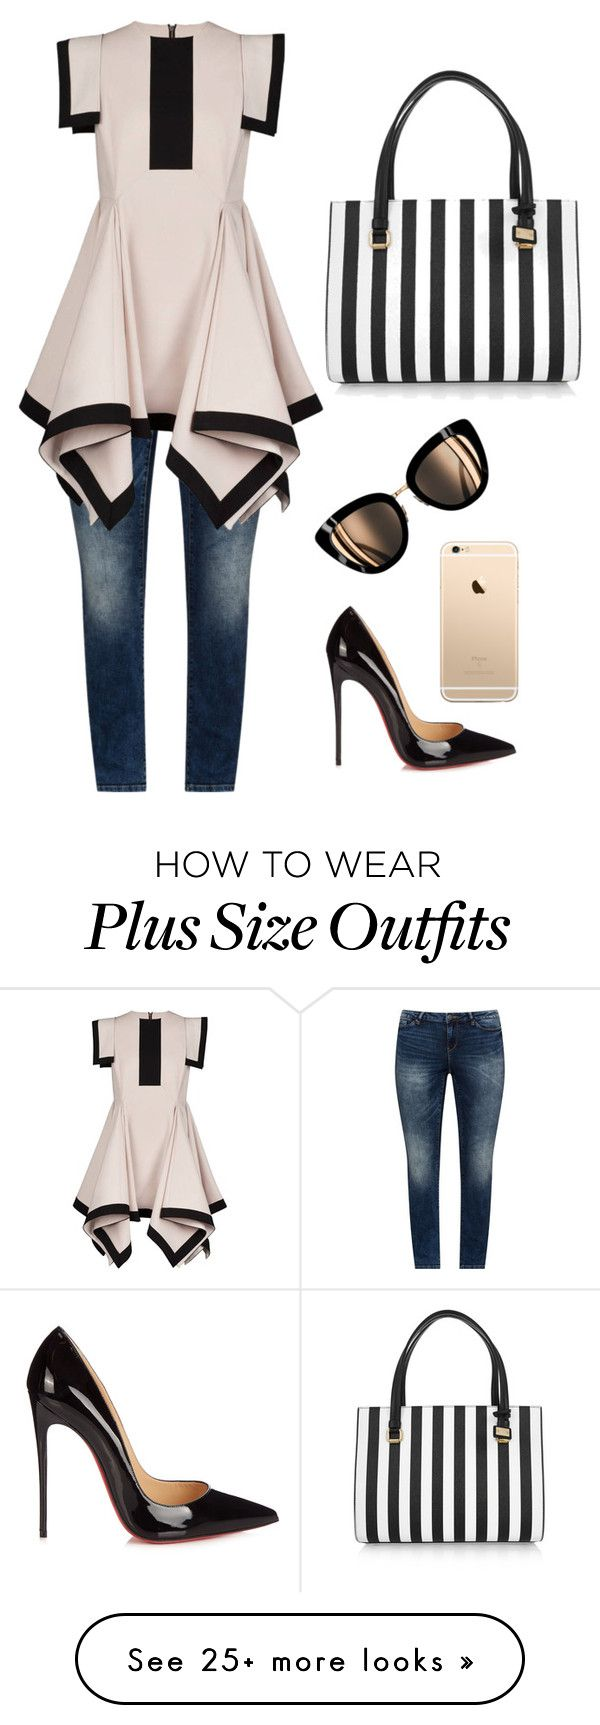 """Sunday Brunch"" by agencyvirtuoso on Polyvore featuring JunaRose, Christian Louboutin and Dolce&Gabbana"